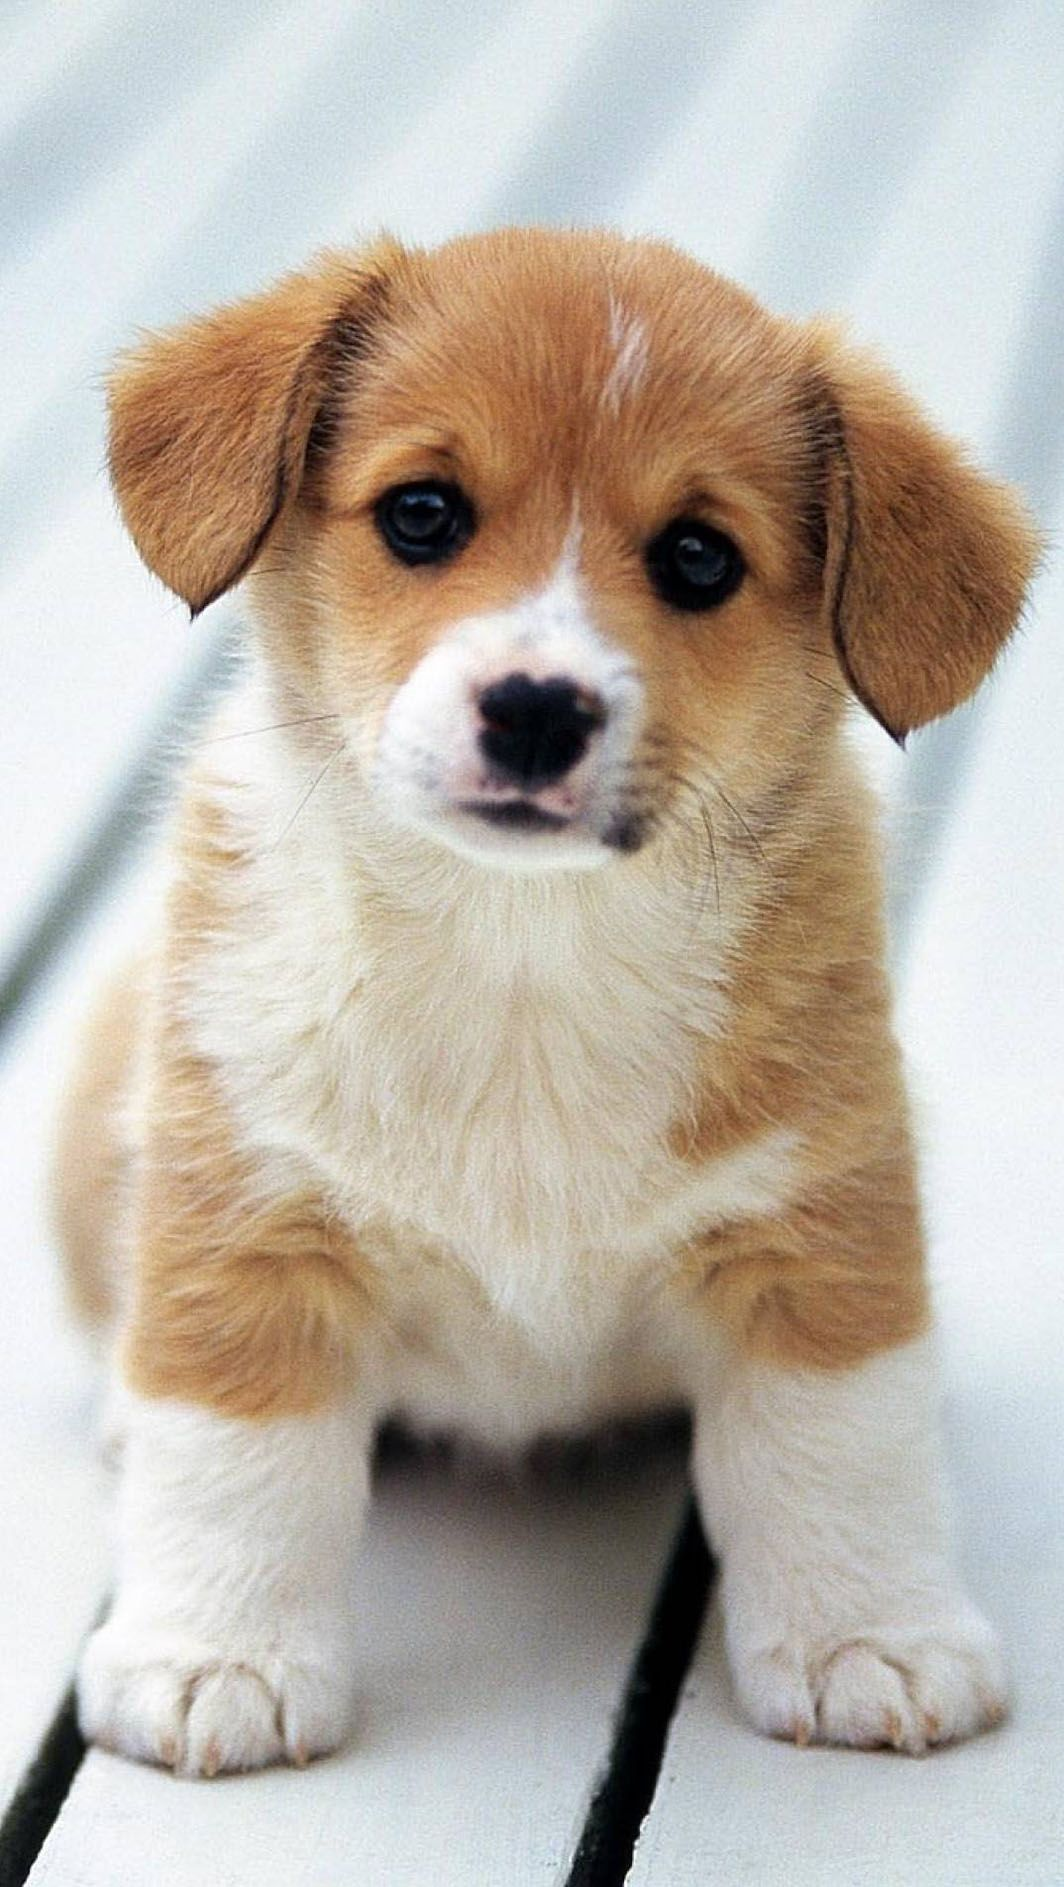 Innocent Puppy Hd Wallpapers Download In Link Cute Animal Videos Cute Dogs And Puppies Cute Puppy Wallpaper